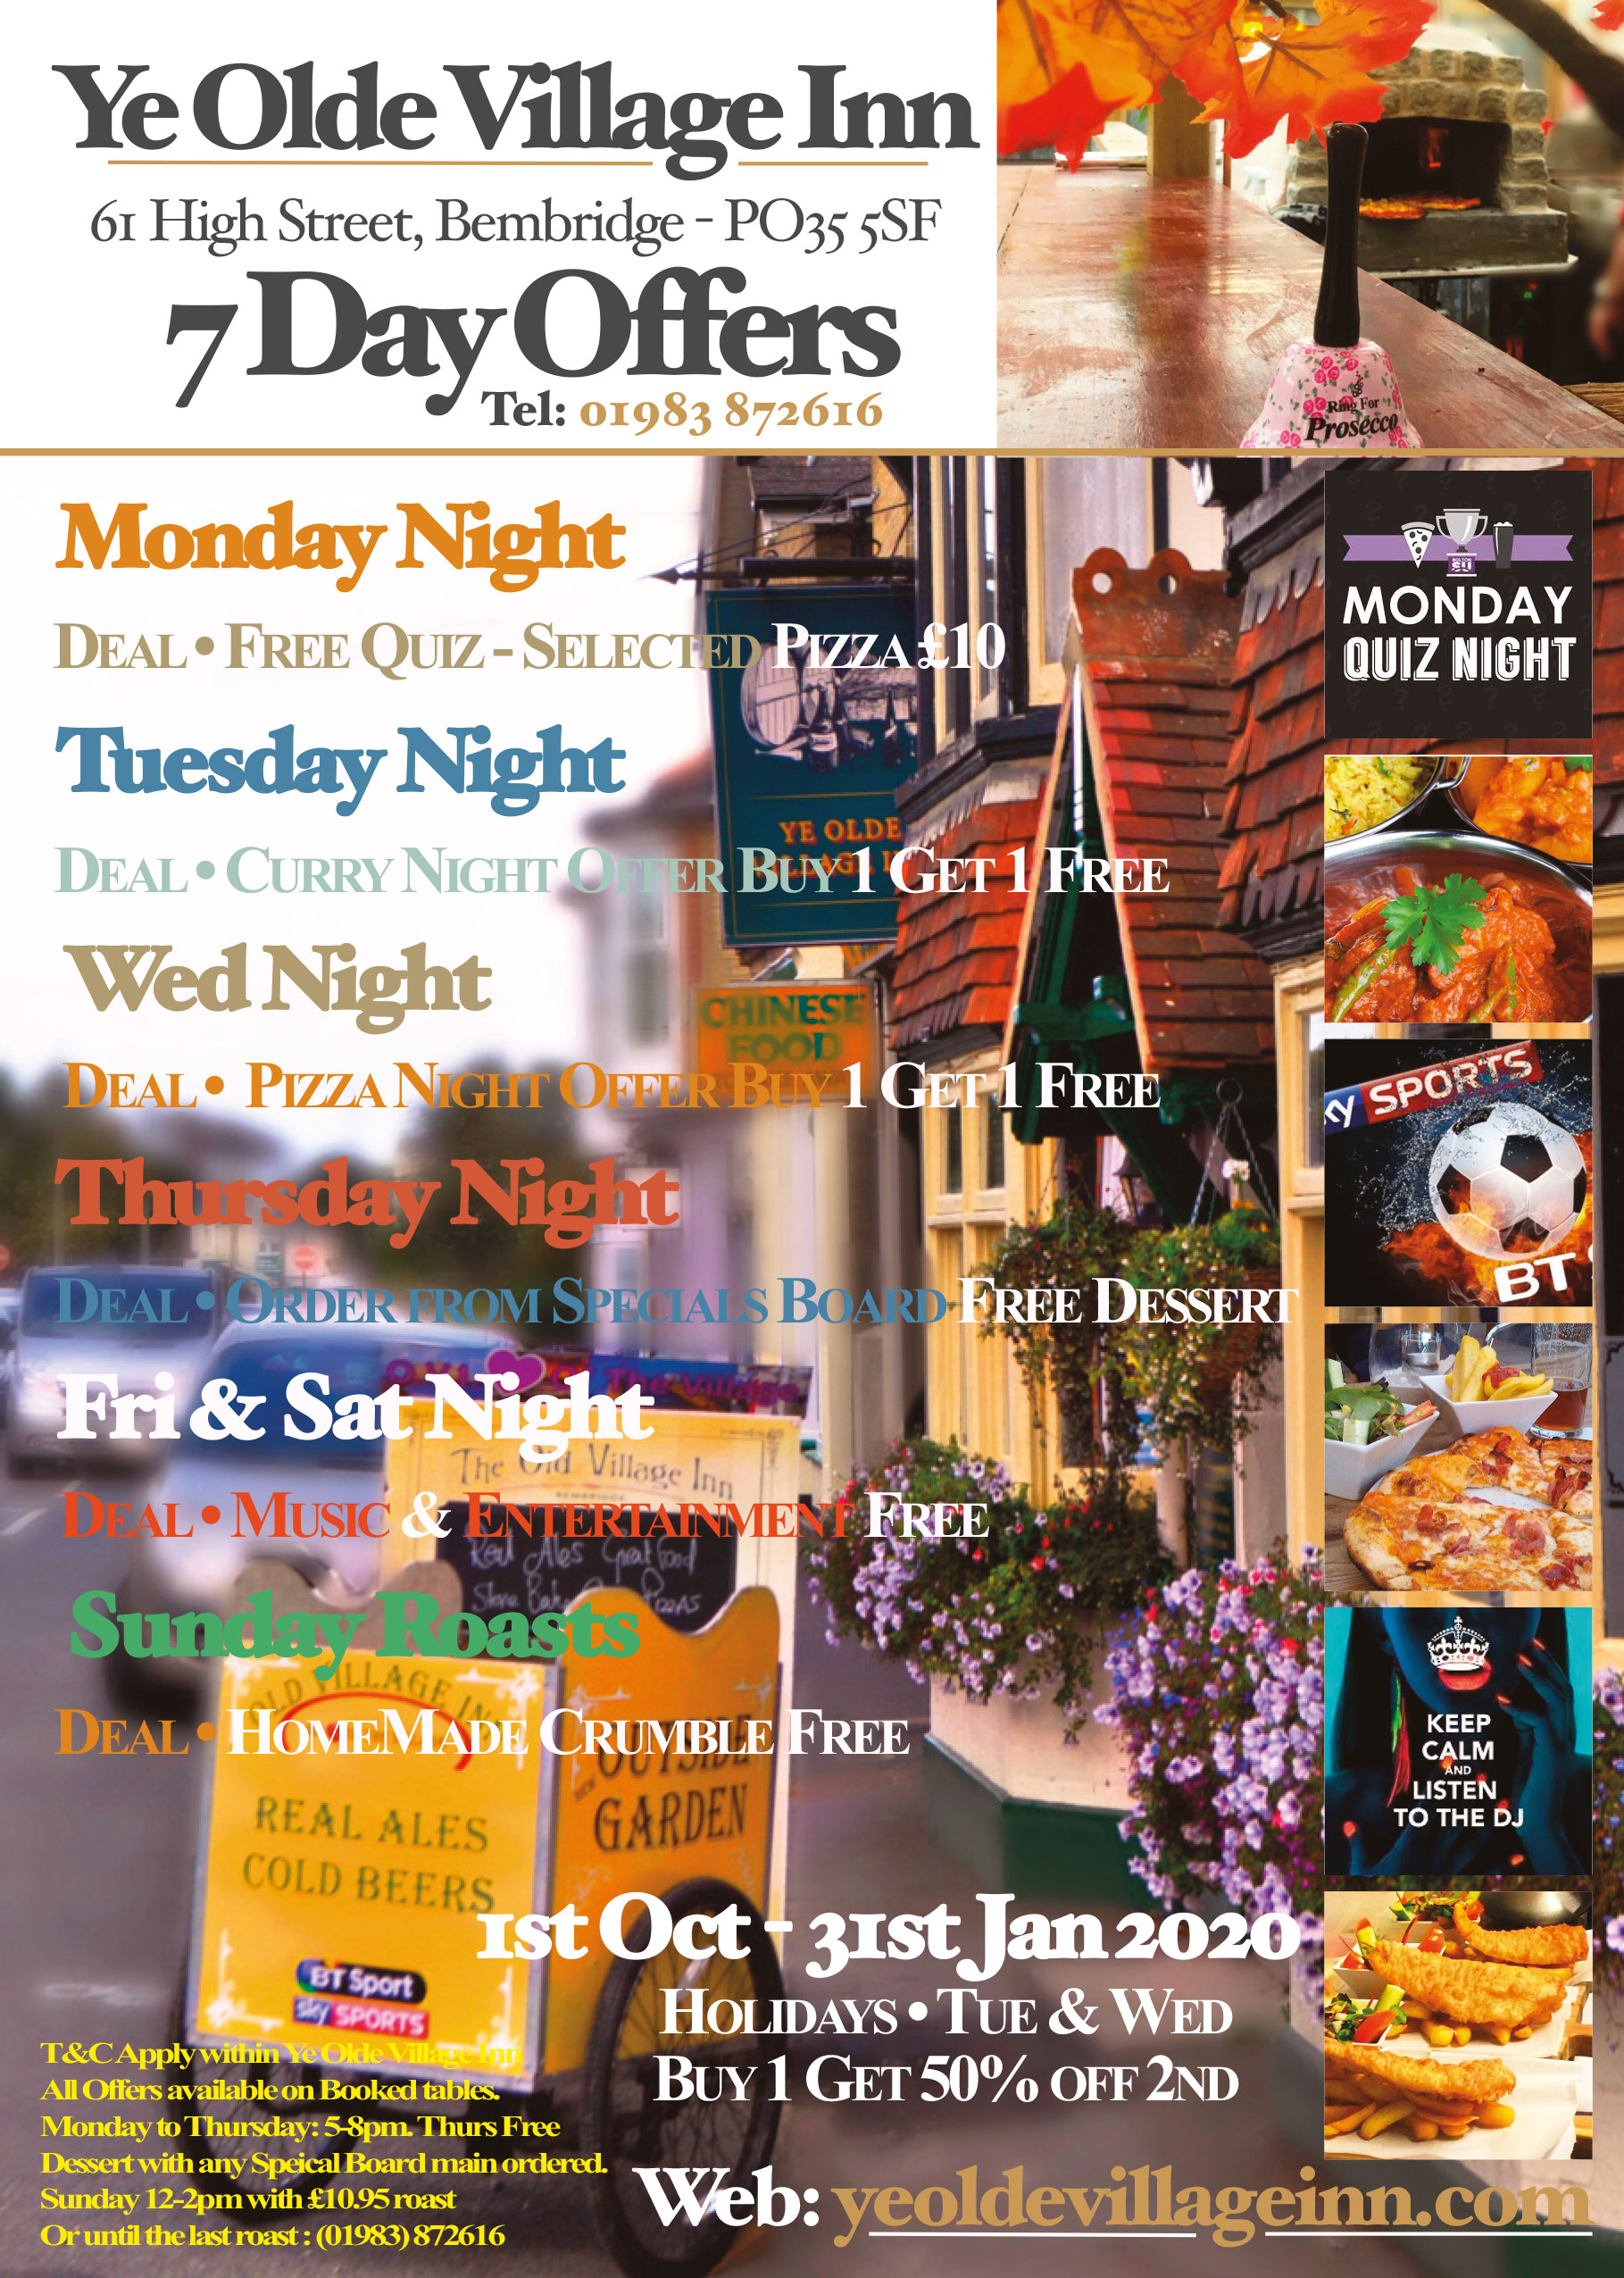 Ye Olde Village Inn - 7 Day Offers